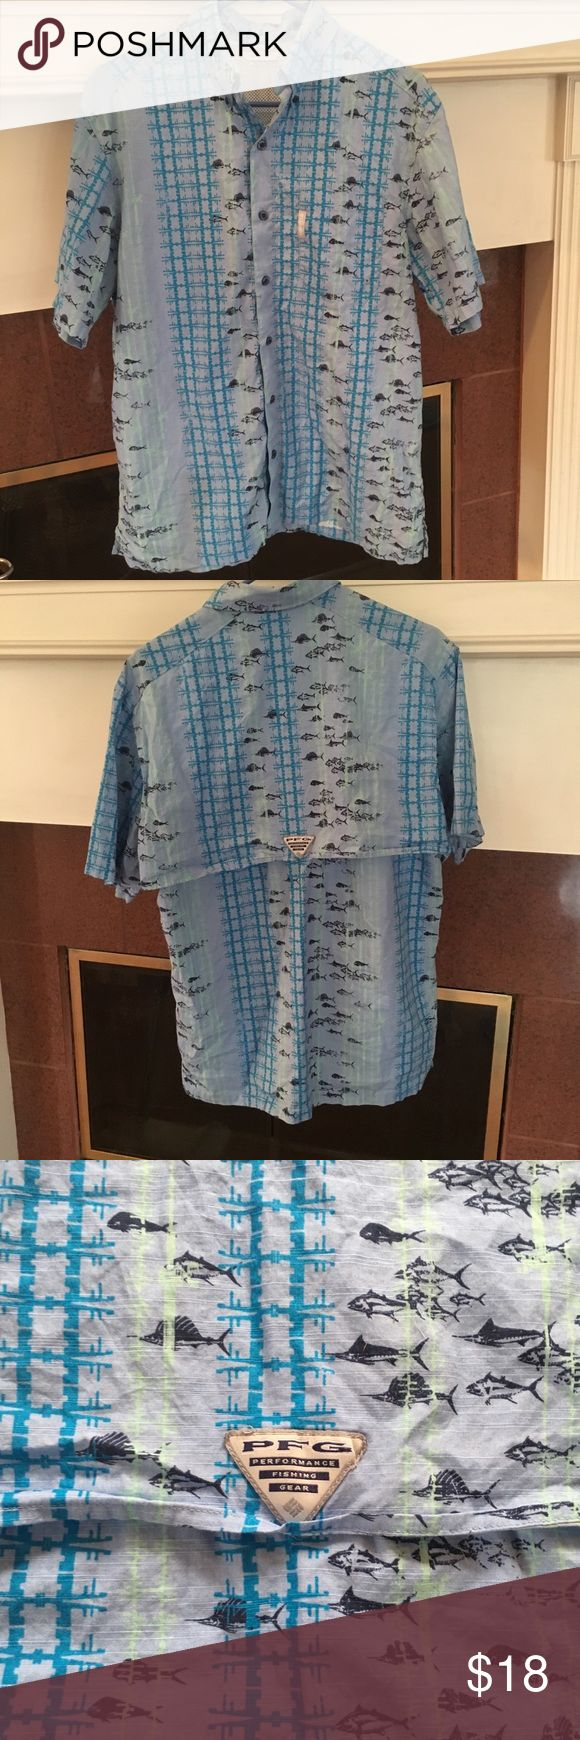 Columbia PFG Blue Vented Fishing Shirt Size Small Columbia PFG Blue Vented Fishing Shirt Size Small Columbia Shirts Casual Button Down Shirts